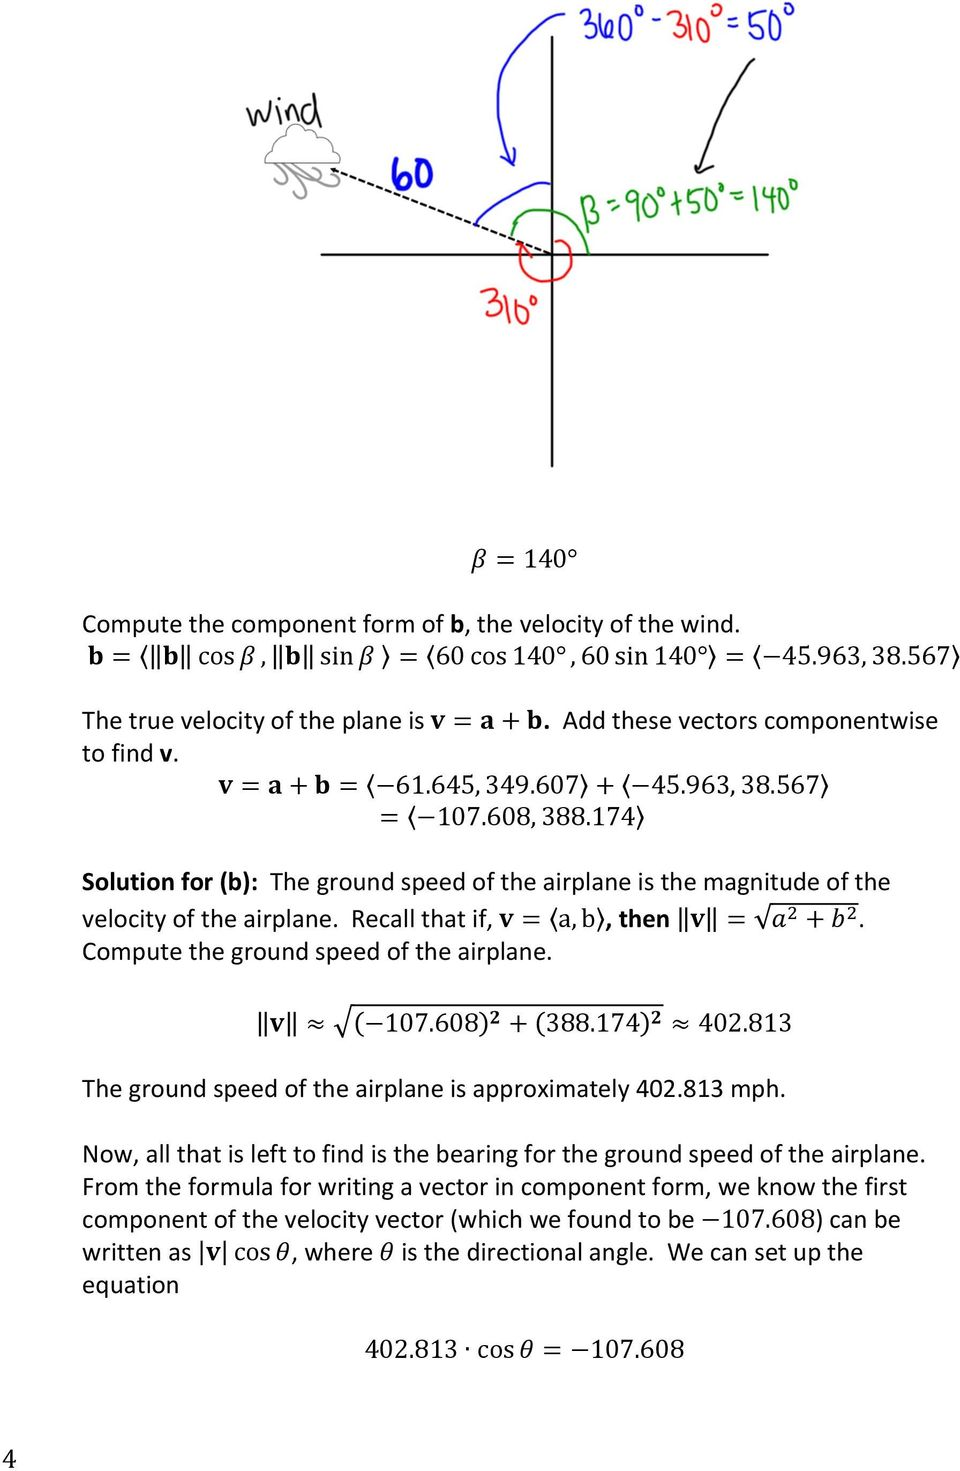 174 Solution for (b): The ground speed of the airplane is the magnitude of the velocity of the airplane. Recall that if, v = a, b, then v = a! + b!. Compute the ground speed of the airplane. v 107.